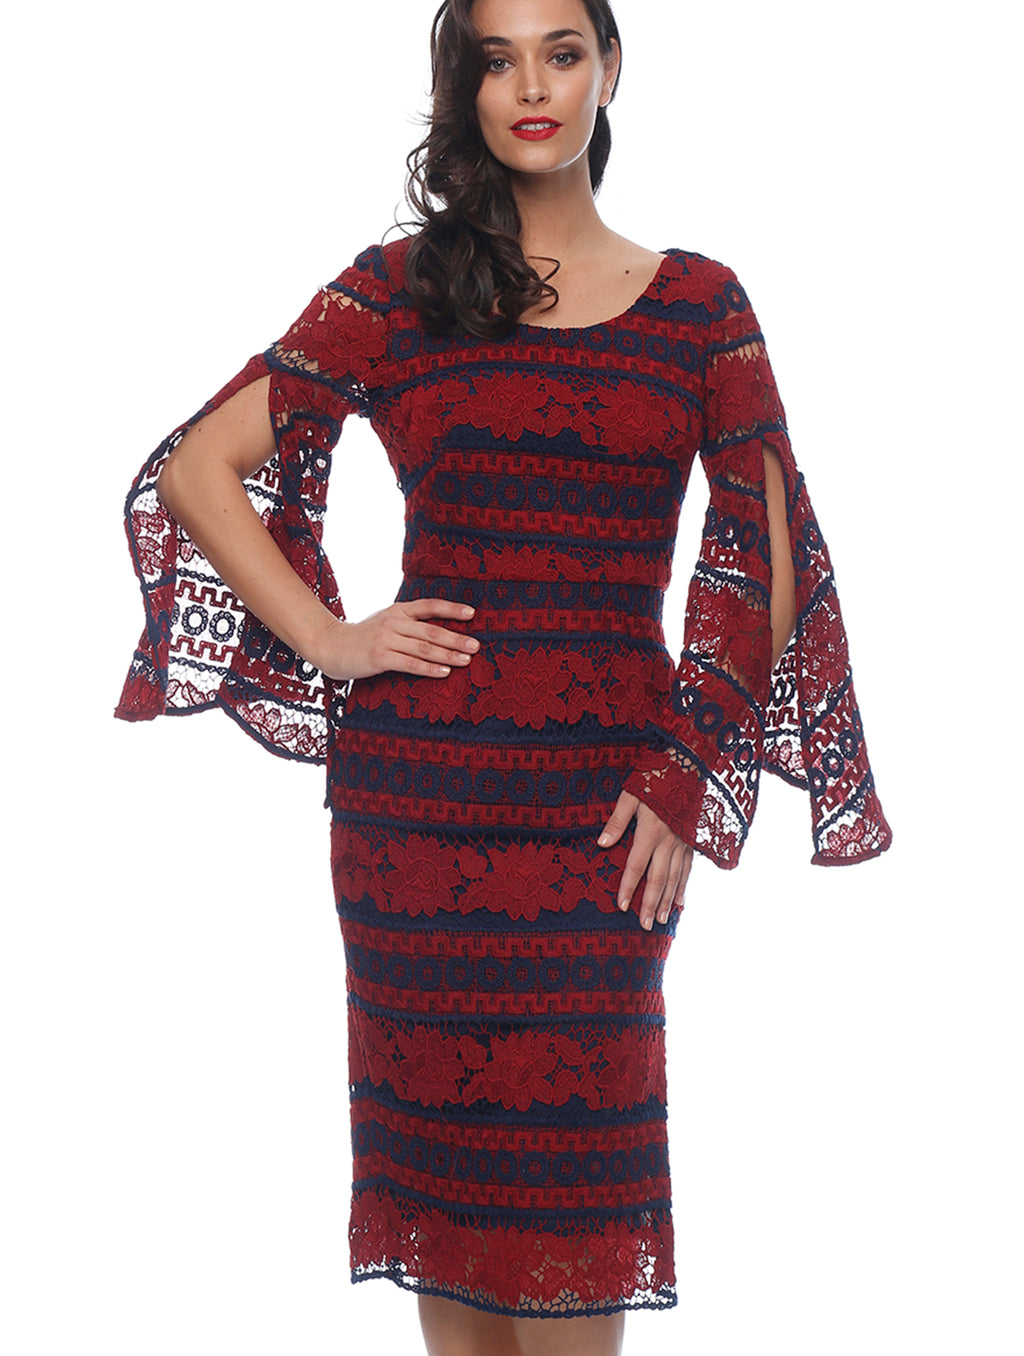 Cora Bell Sleeve Dress